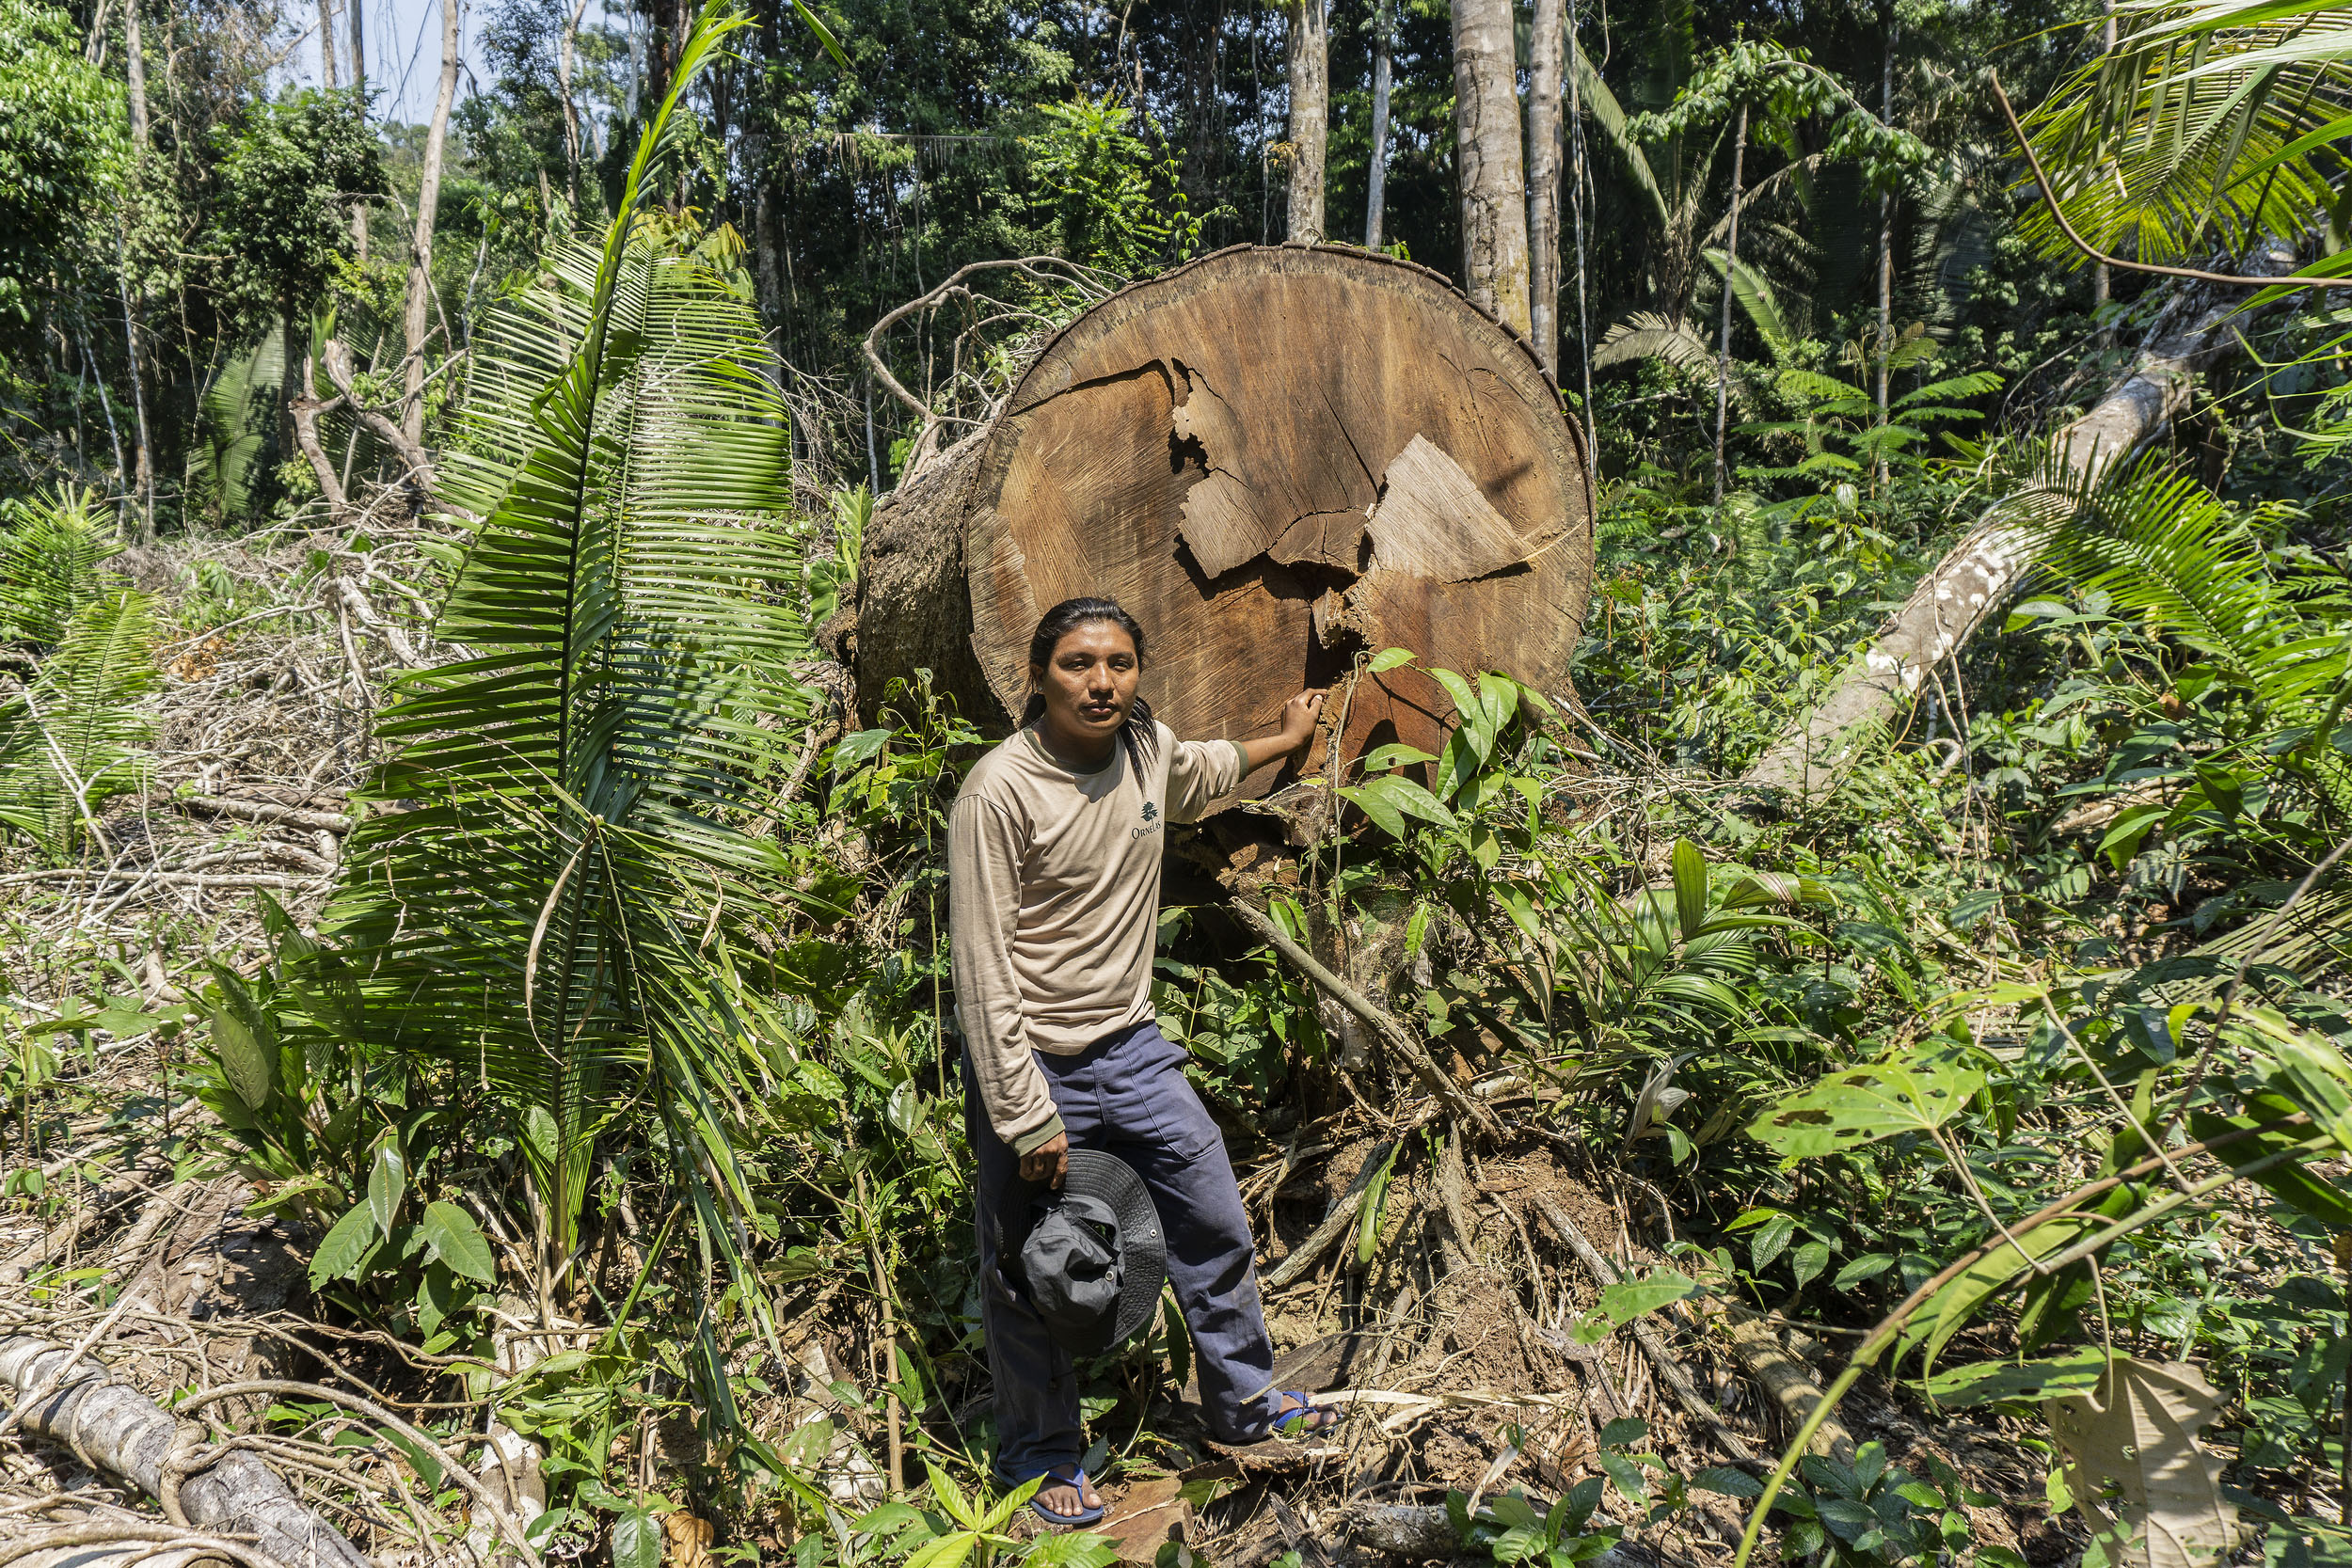 A man stands at the stump of a felled tree with a diamater of around a metre, surrounded by rainforest.